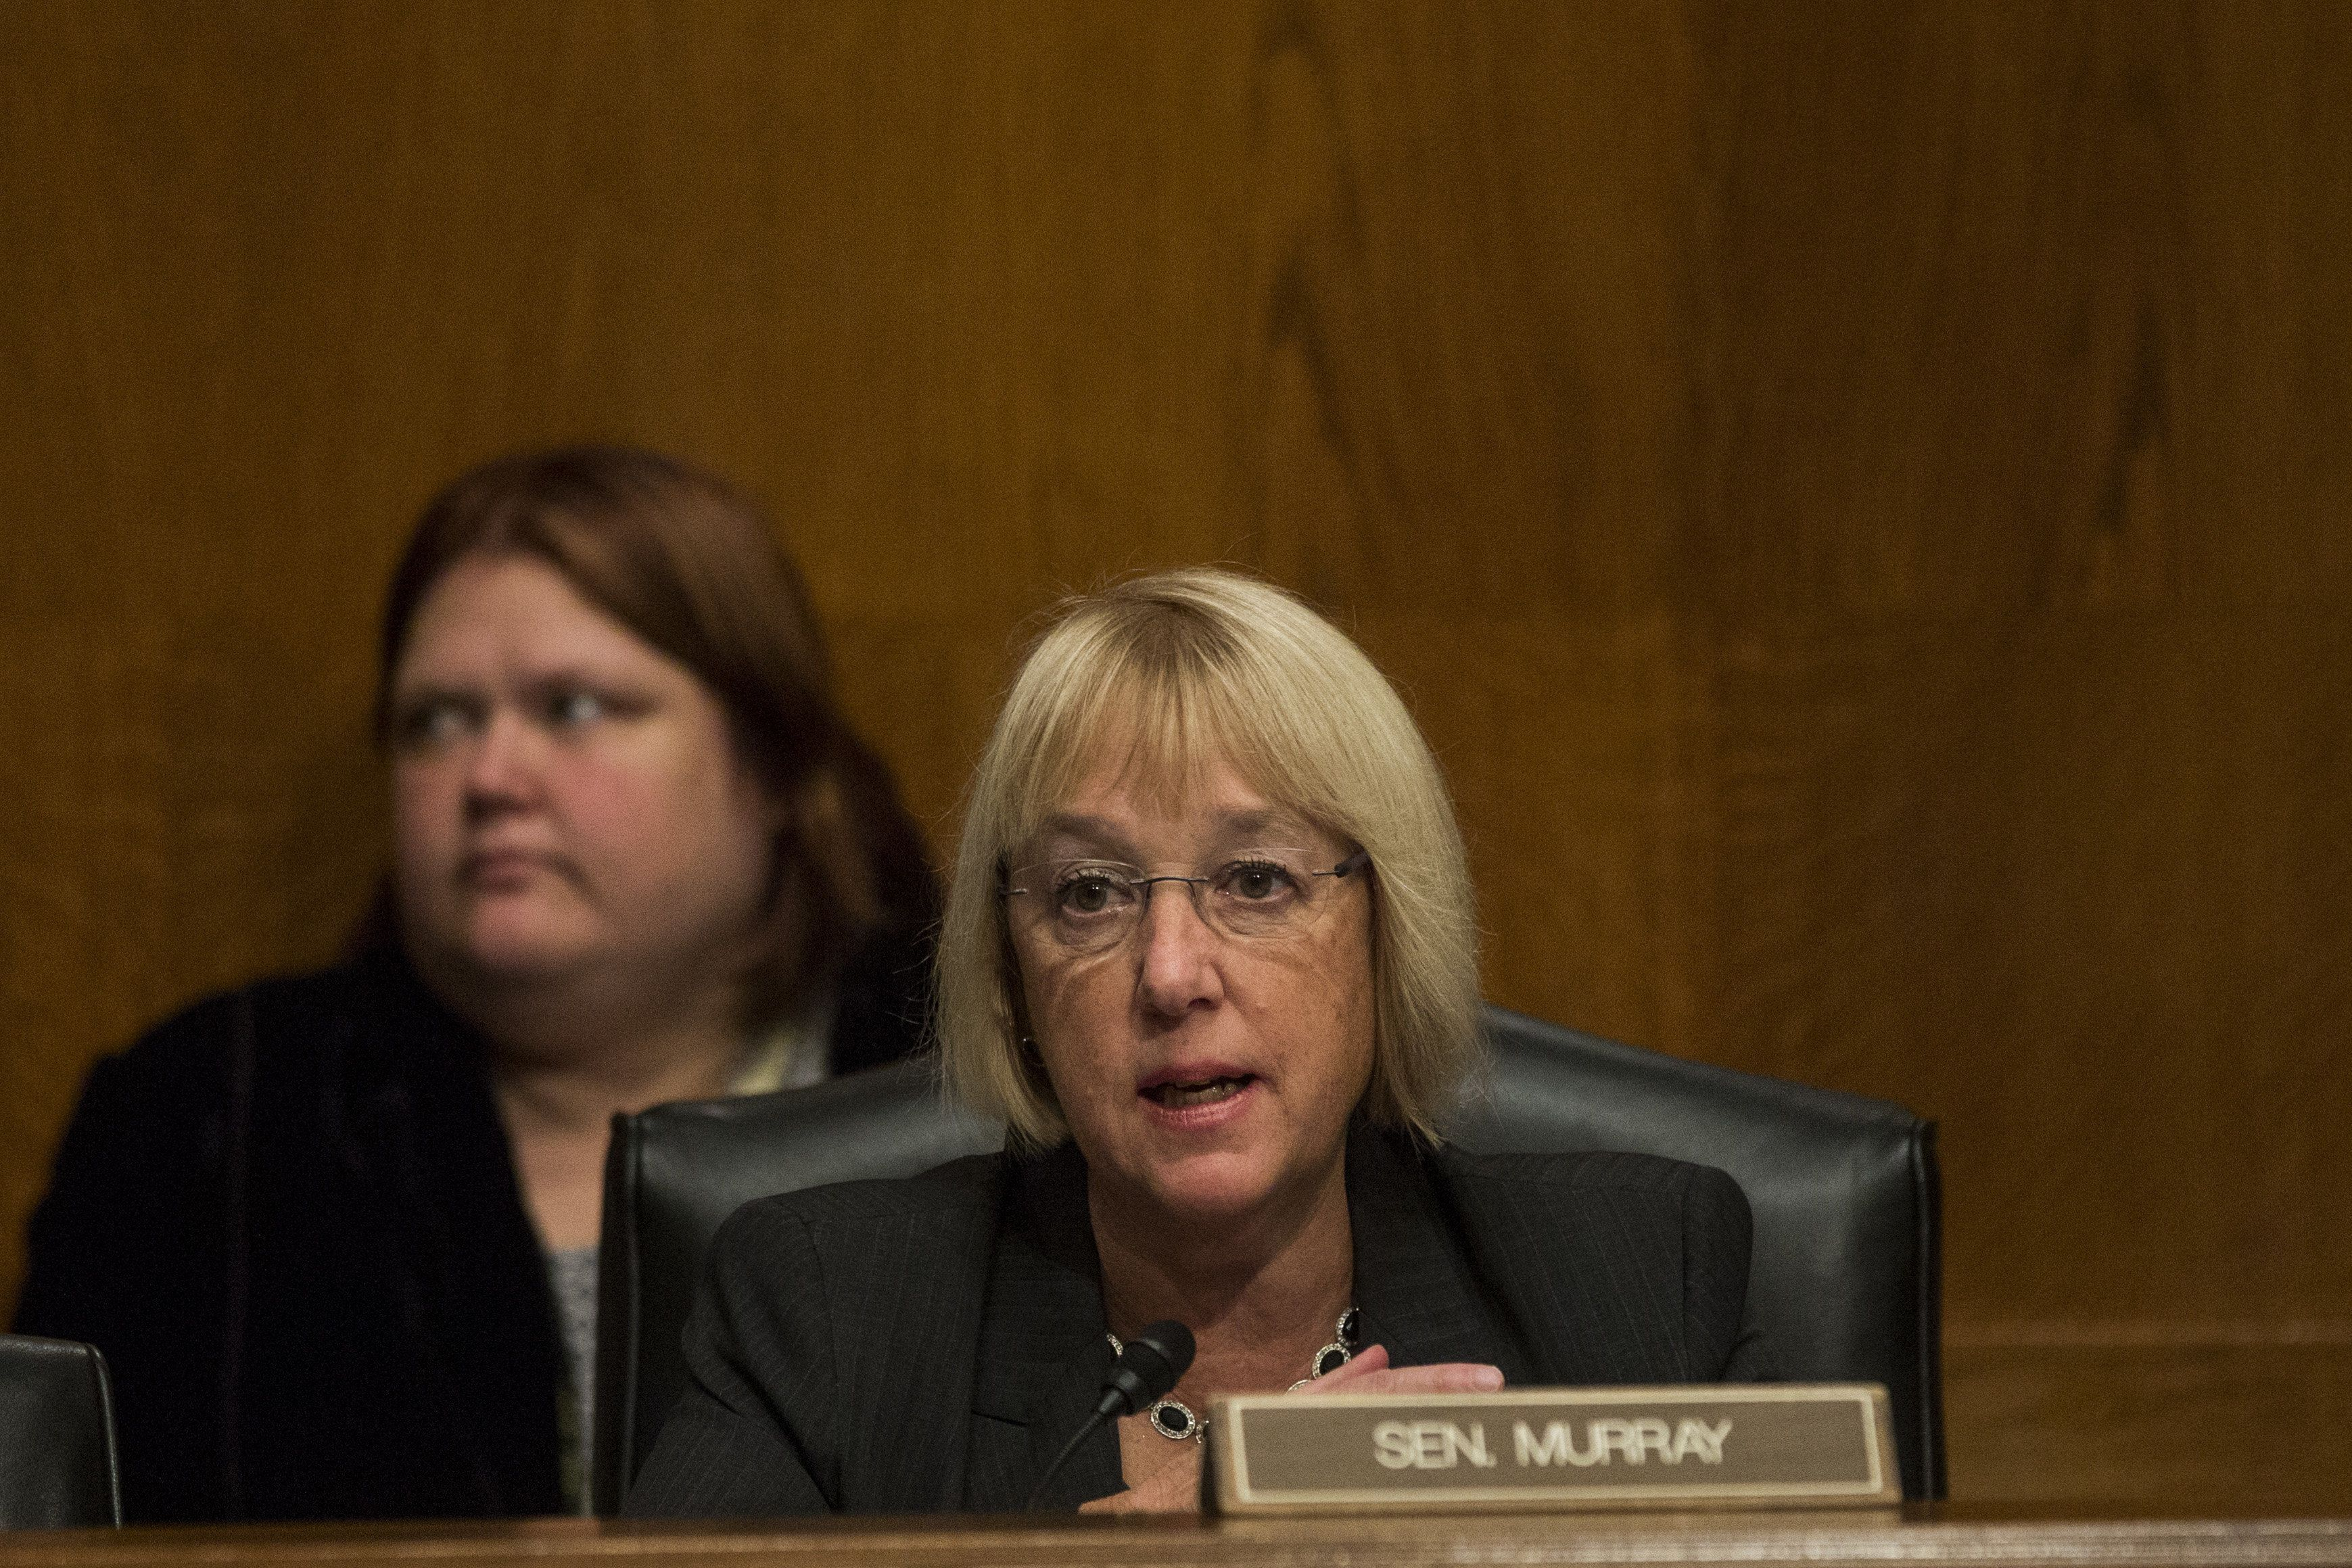 Senator Patty Murray, a Democrat from Washington and ranking member of the Senate Health, Education, Labor and Pensions (HELP) Committee, speaks during a hearing in Washington, D.C., U.S., on Thursday, Oct. 19, 2017. America's Health Insurance Plans said the bipartisan measure crafted by Senator Lamar Alexander and Murray will provide American consumers with a more stable insurance market, states with more flexibility to meet the needs of their citizens, and more choice and more affordable care. Photographer: Zach Gibson/Bloomberg via Getty Images